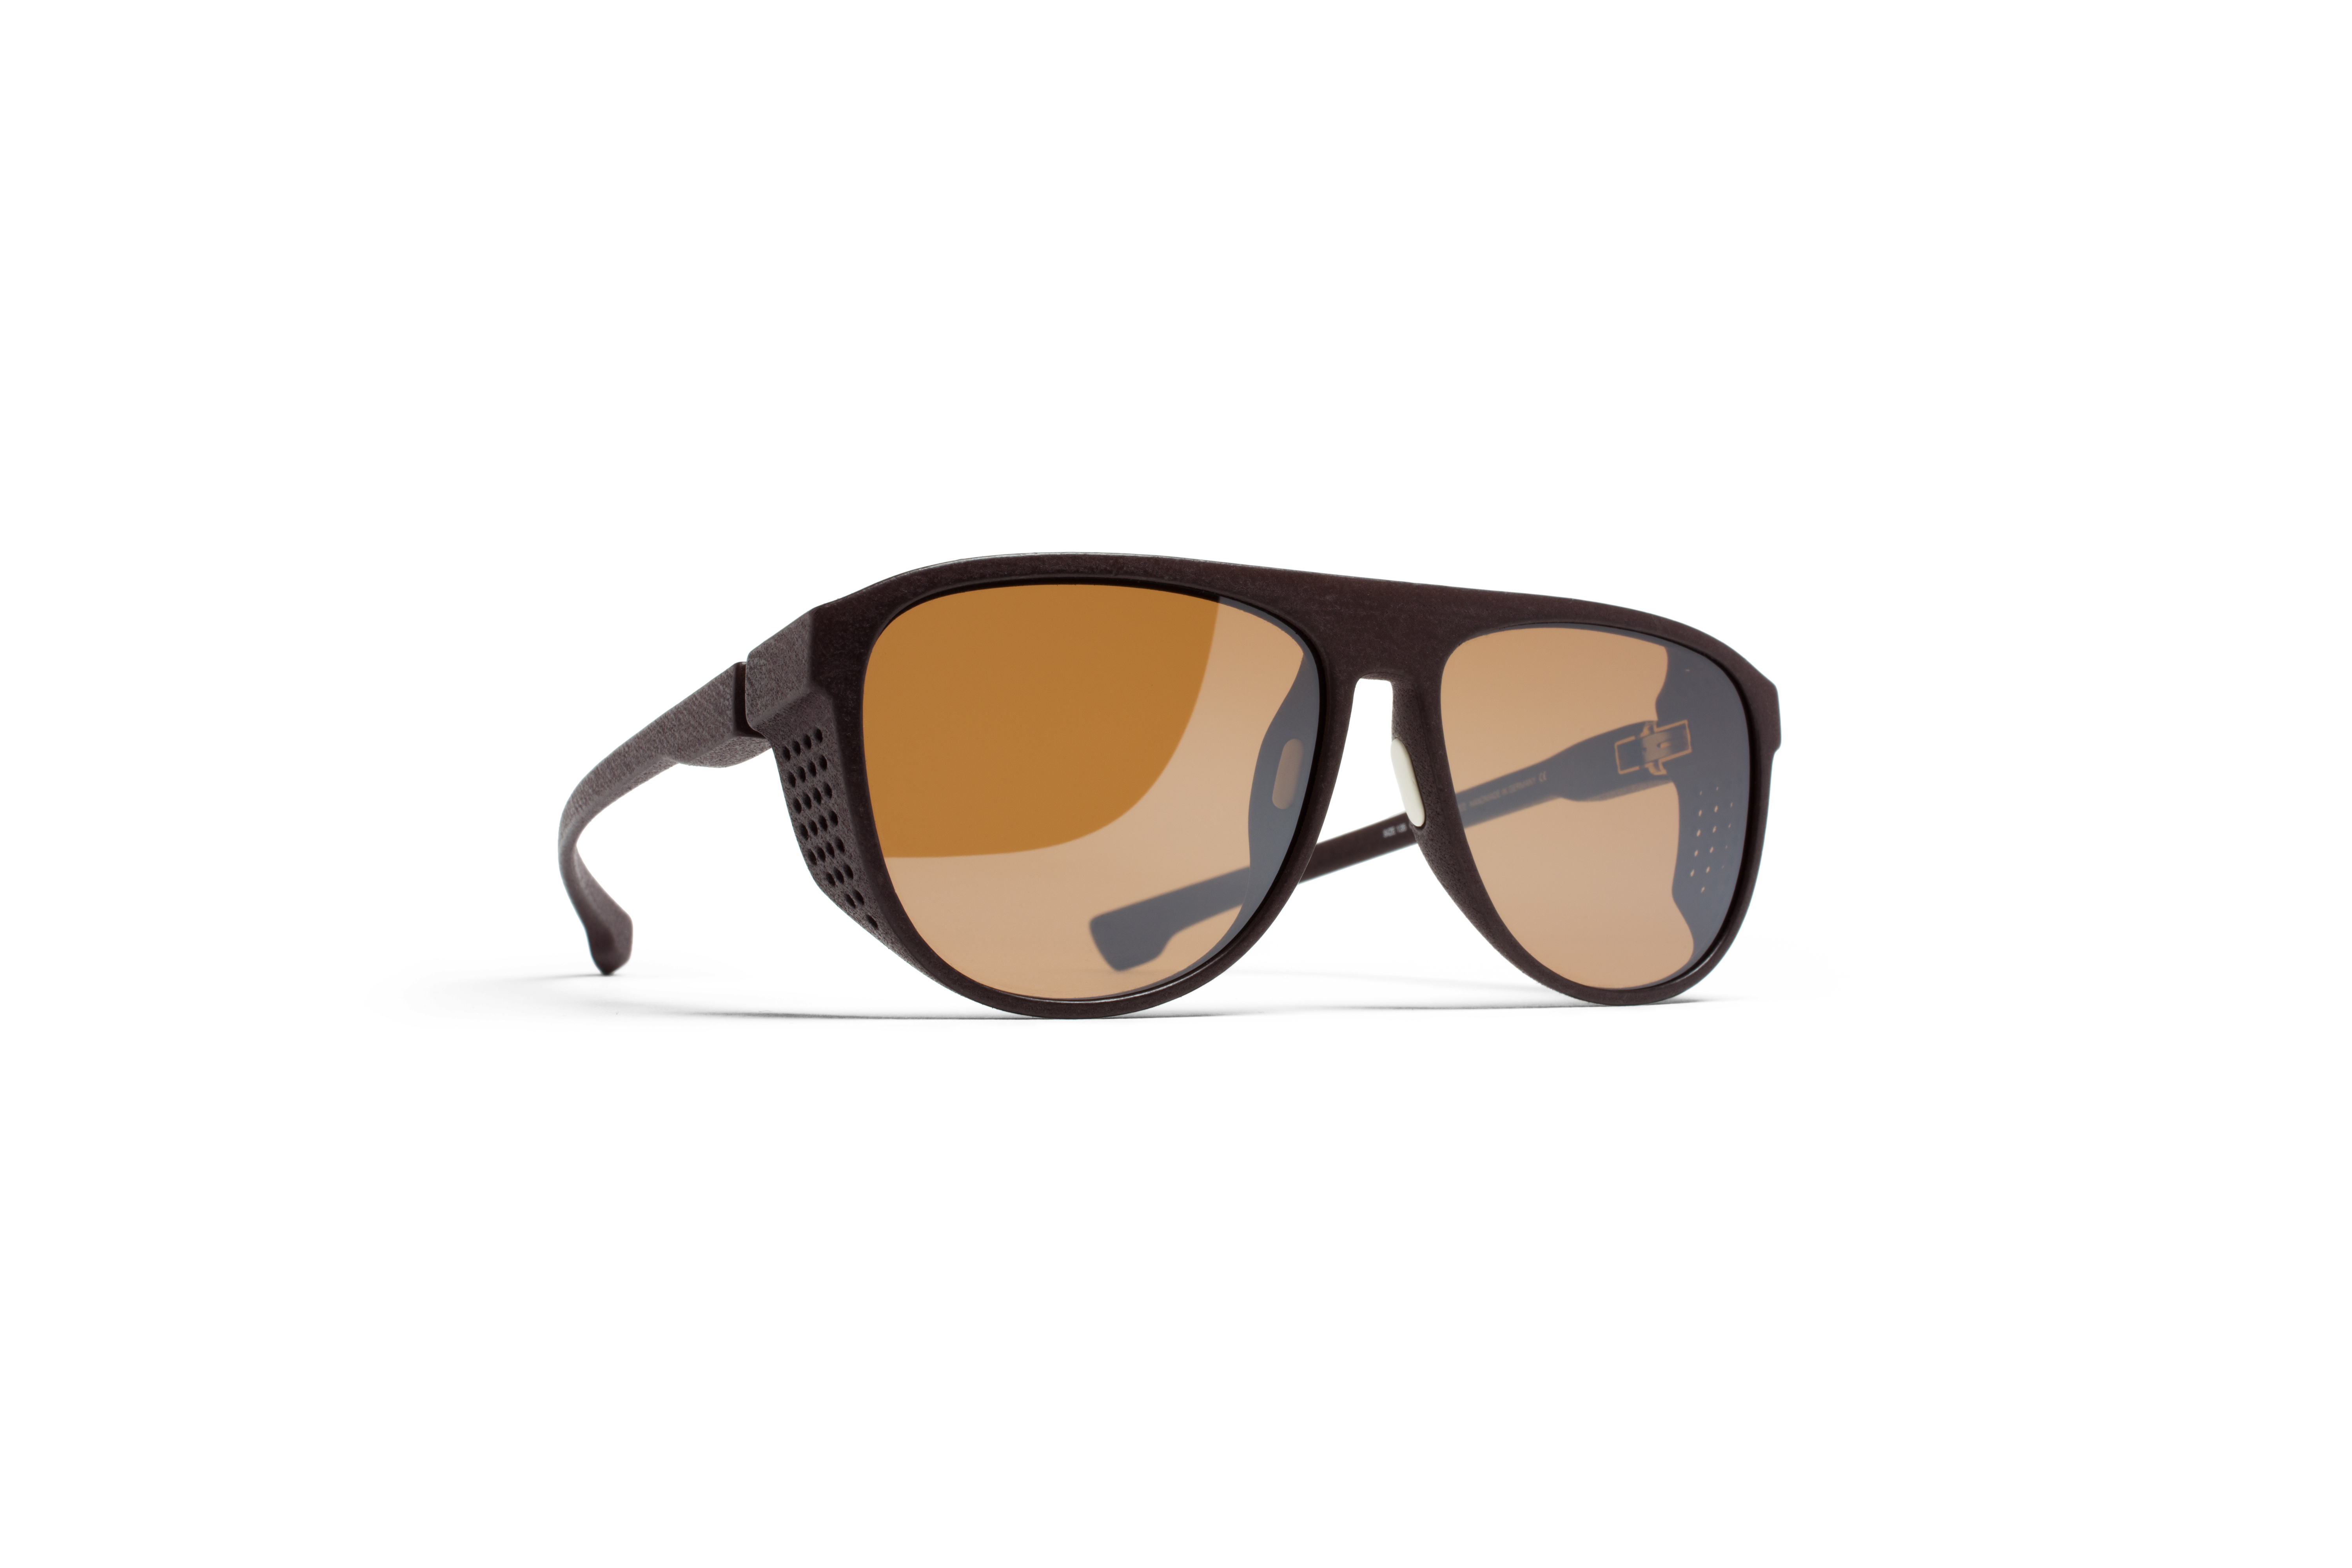 MYKITA Mylon Sun Turbo Md22 Ebony Brown Siennabrow574ed8406aeb5